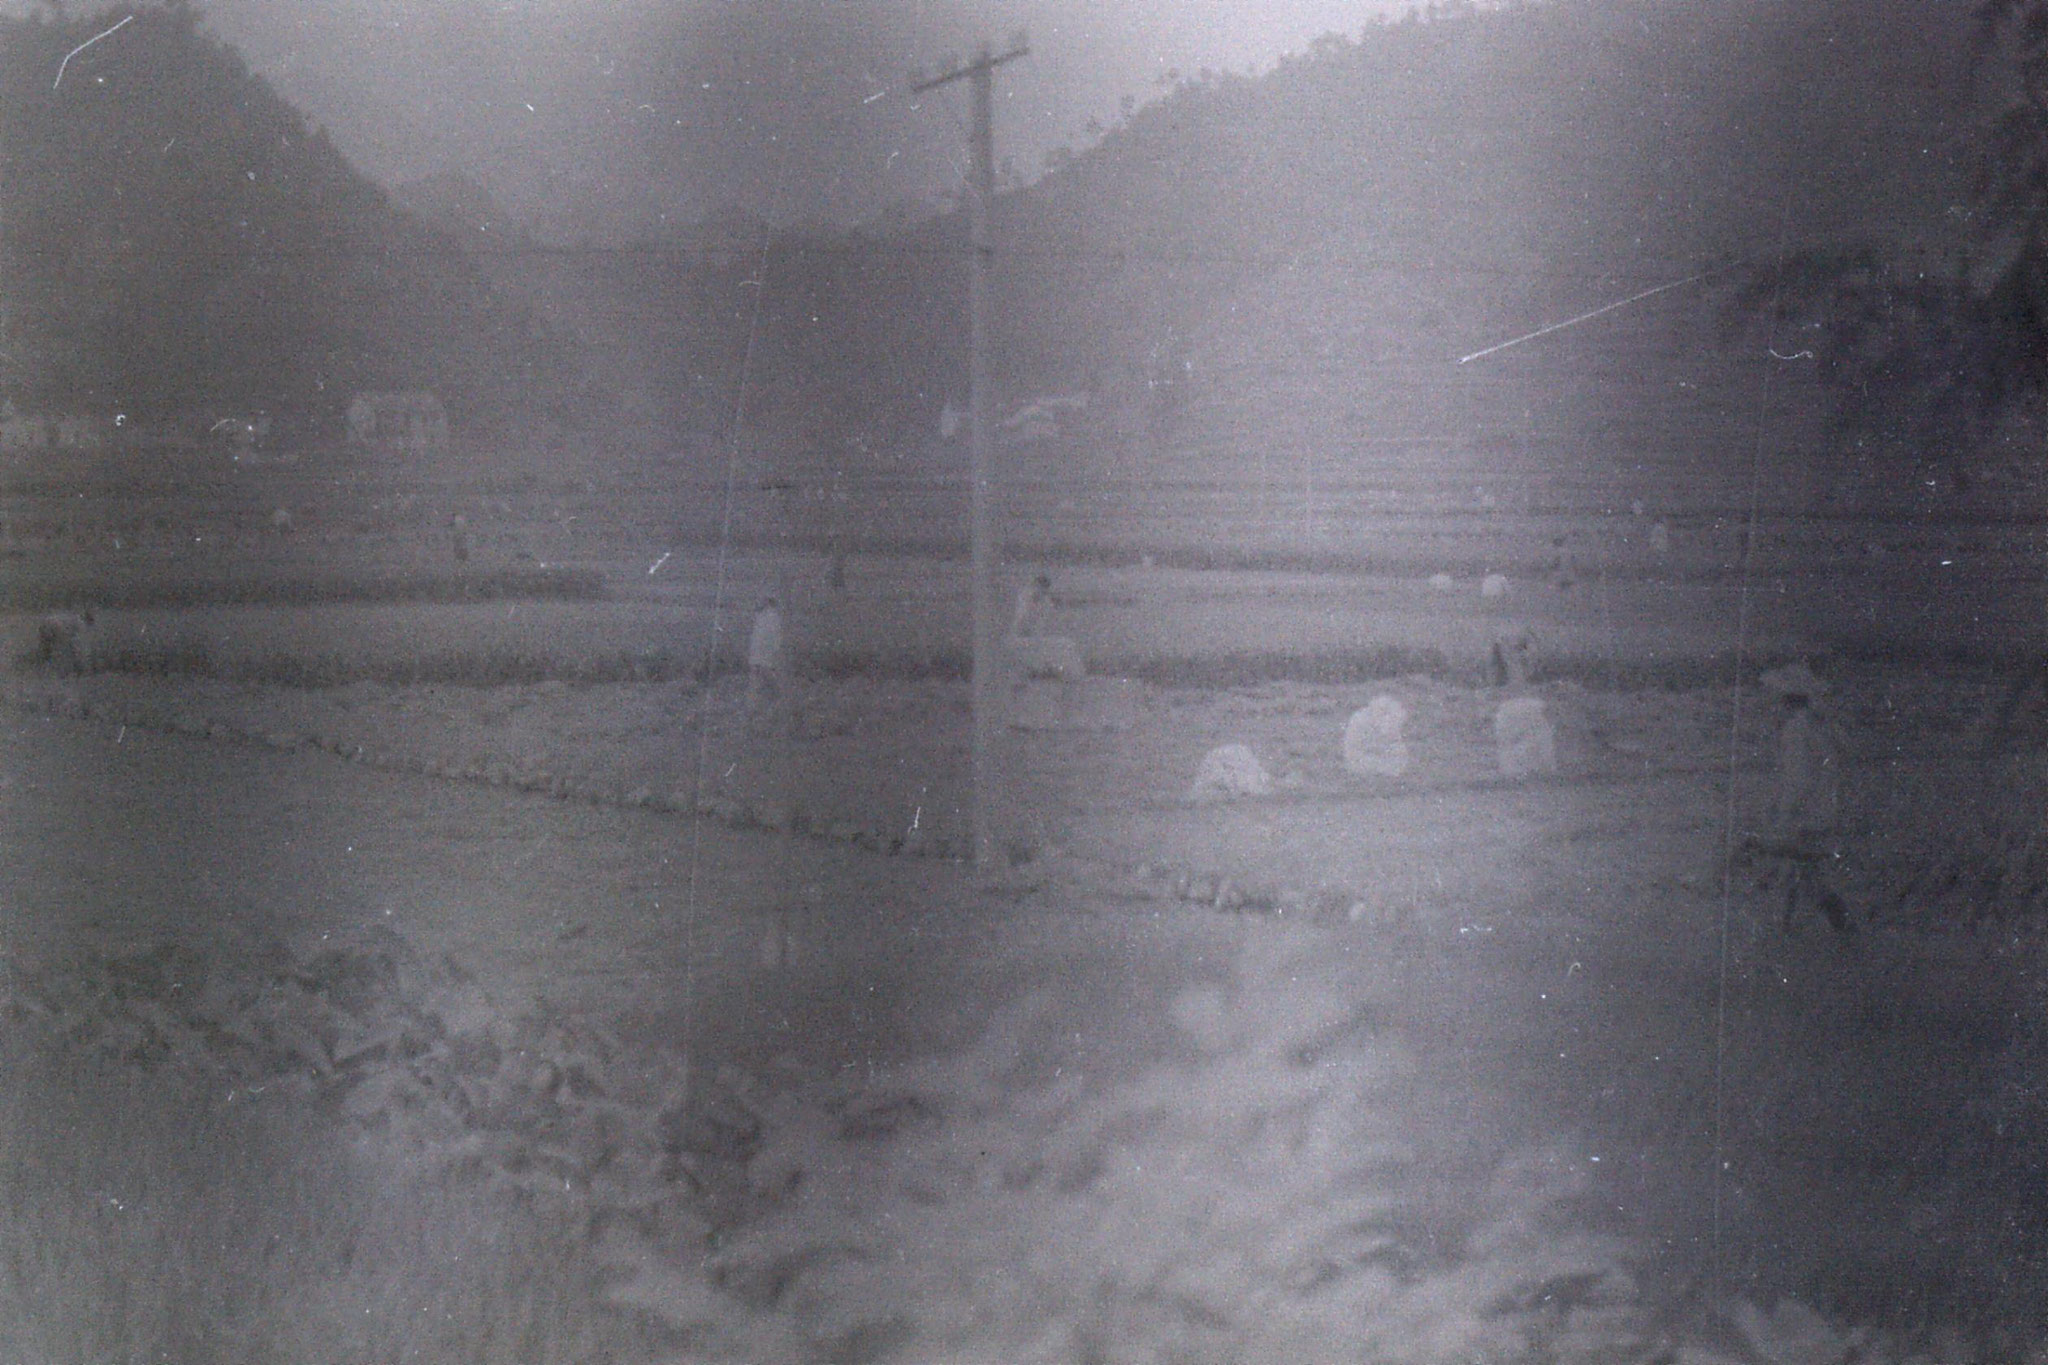 2/8/1989: 4: rice harvesting from train to Huang Shan